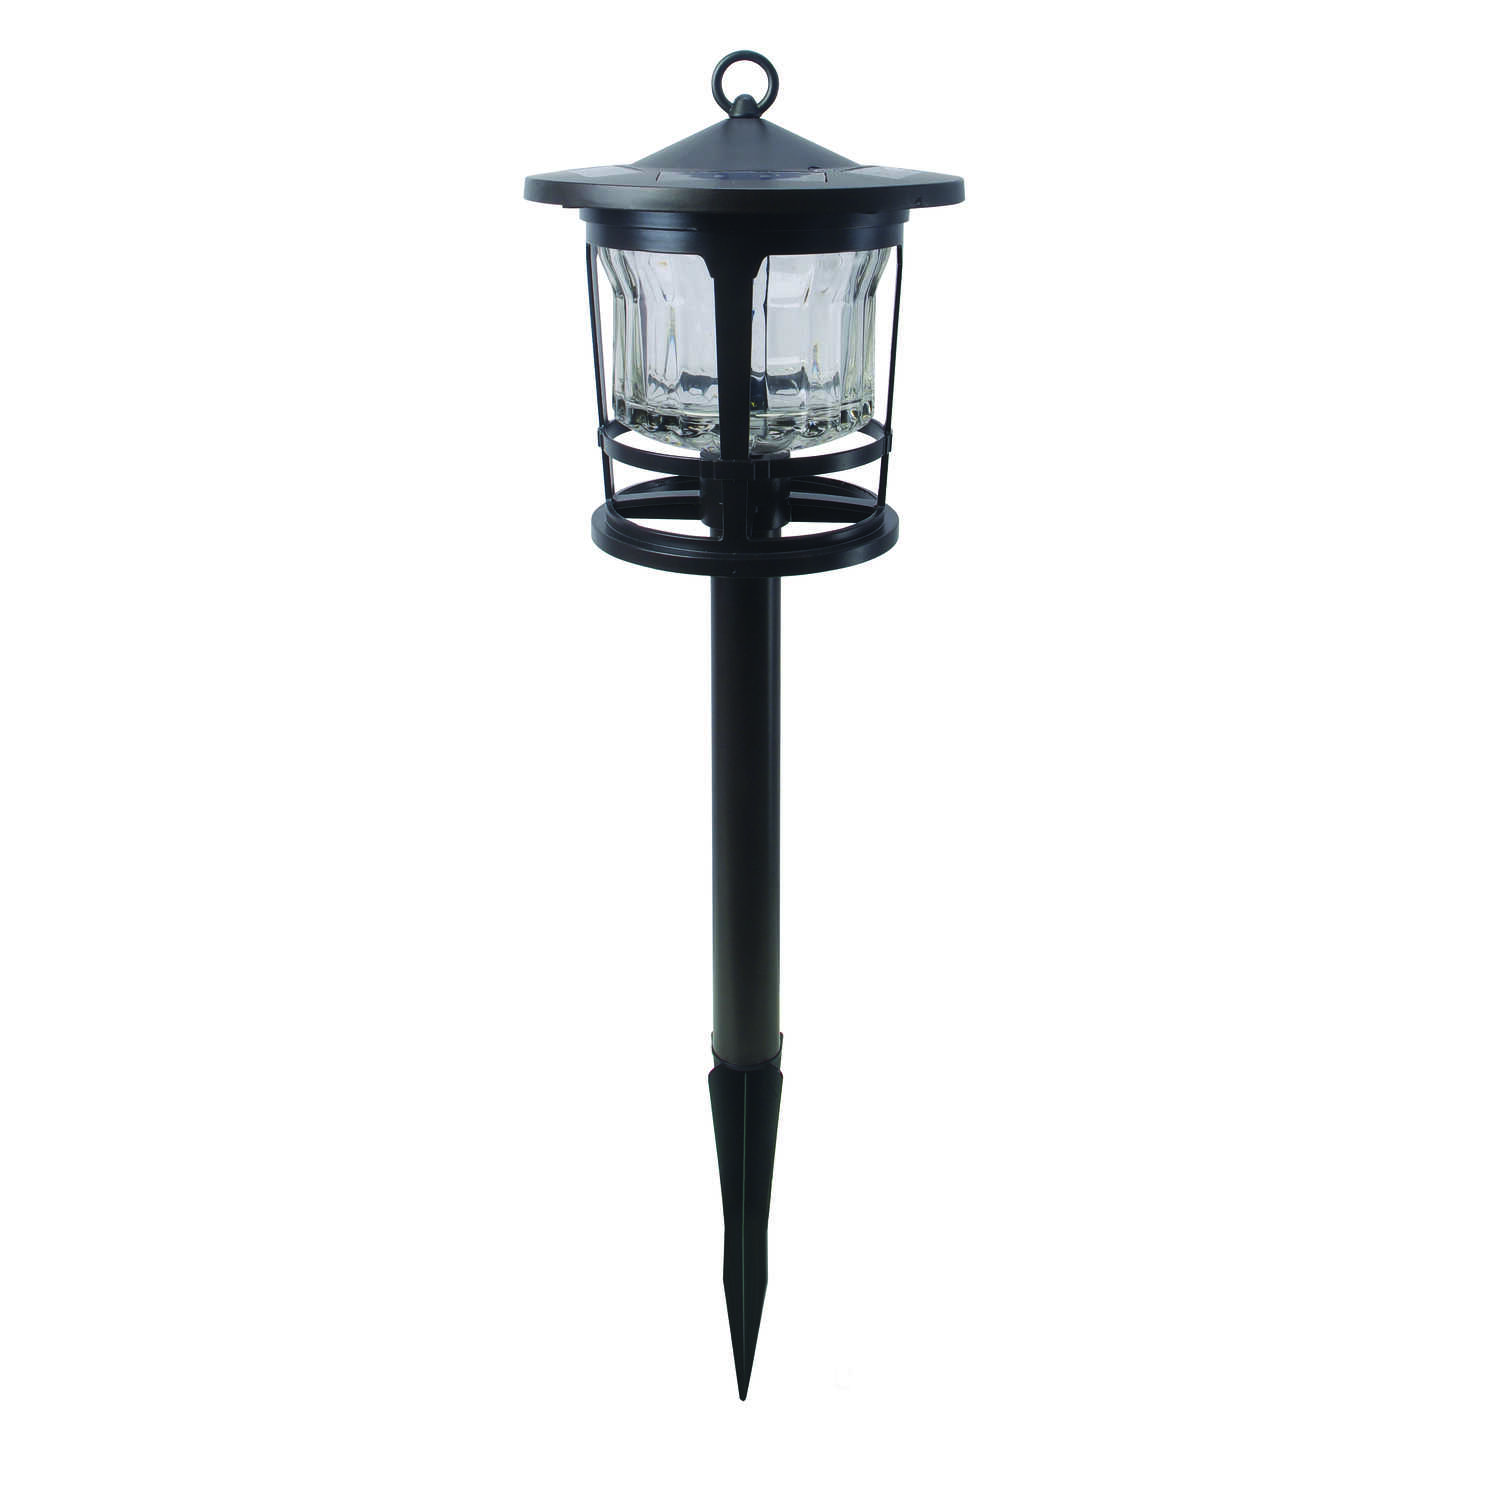 Living Accents  Powered by Duracell  Solar Powered  LED  Pathway Light  1 pk